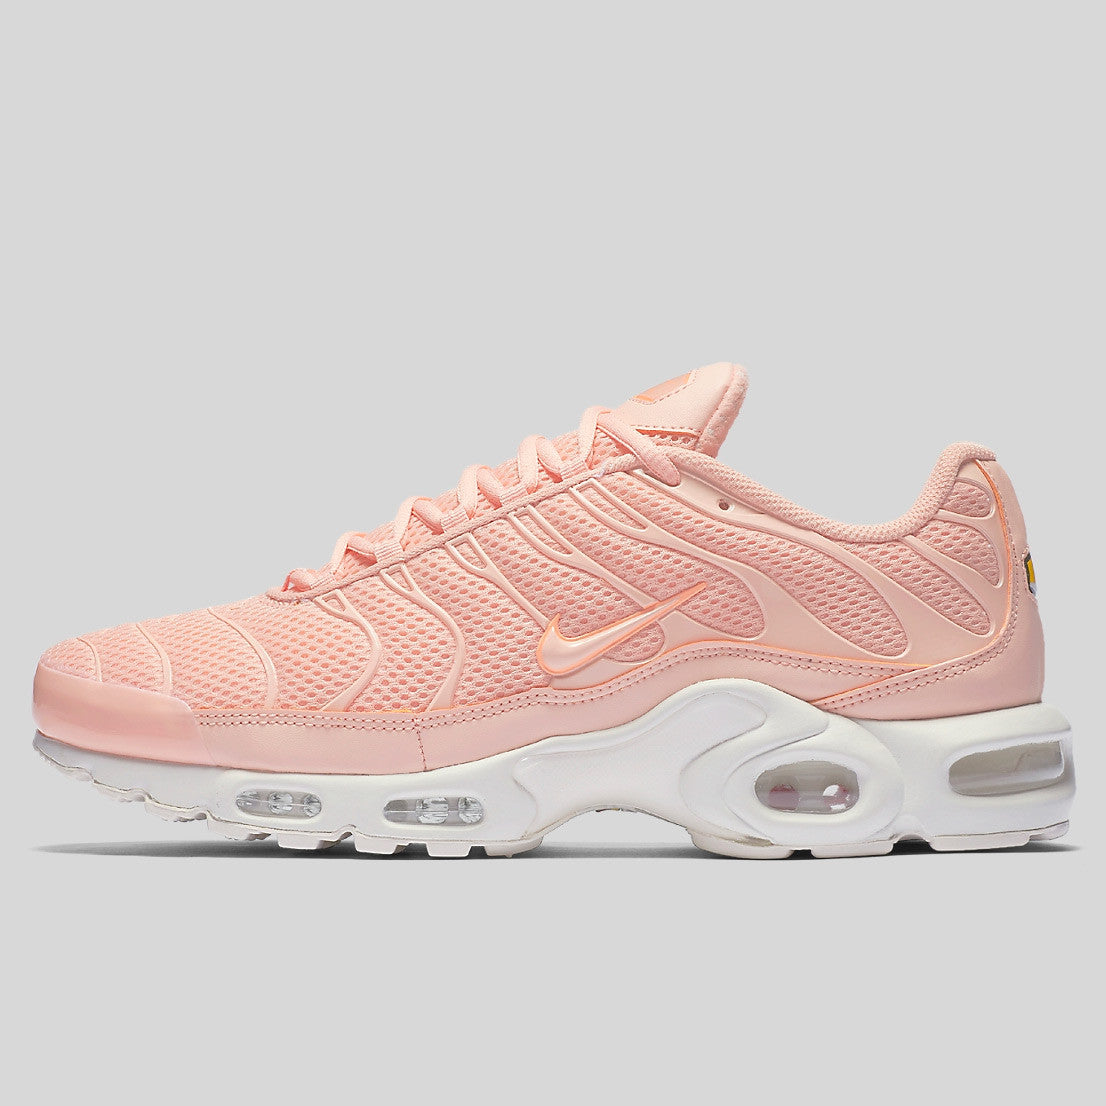 Nike Air Max Plus Br Arctic Orange 898014 800 Kix Files